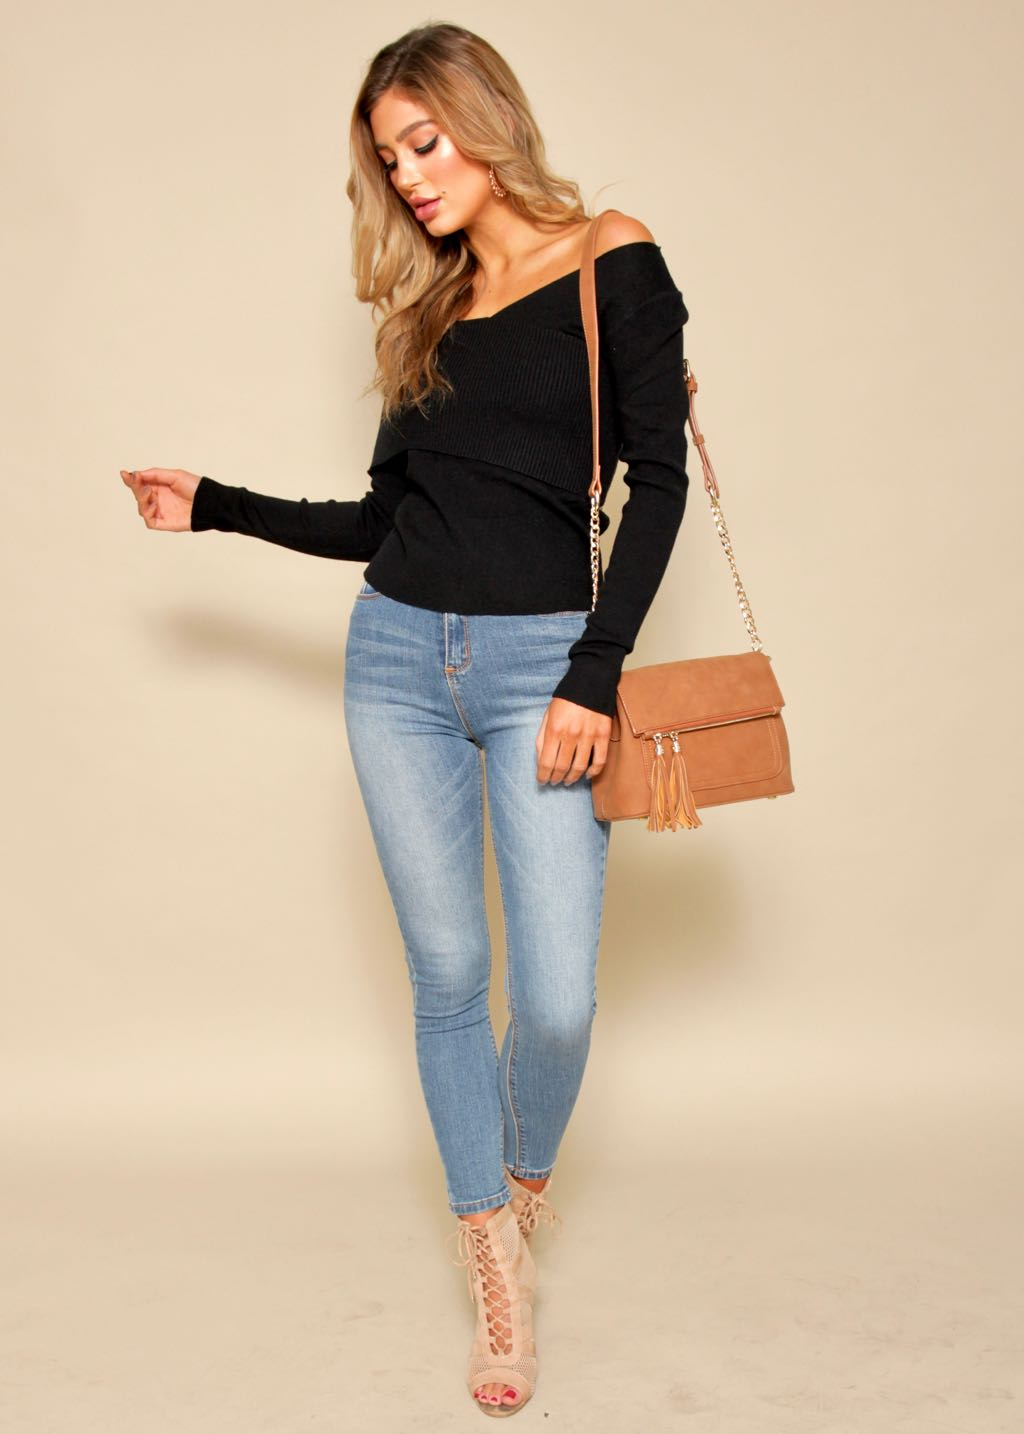 Breakaway One Shoulder Sweater - Black